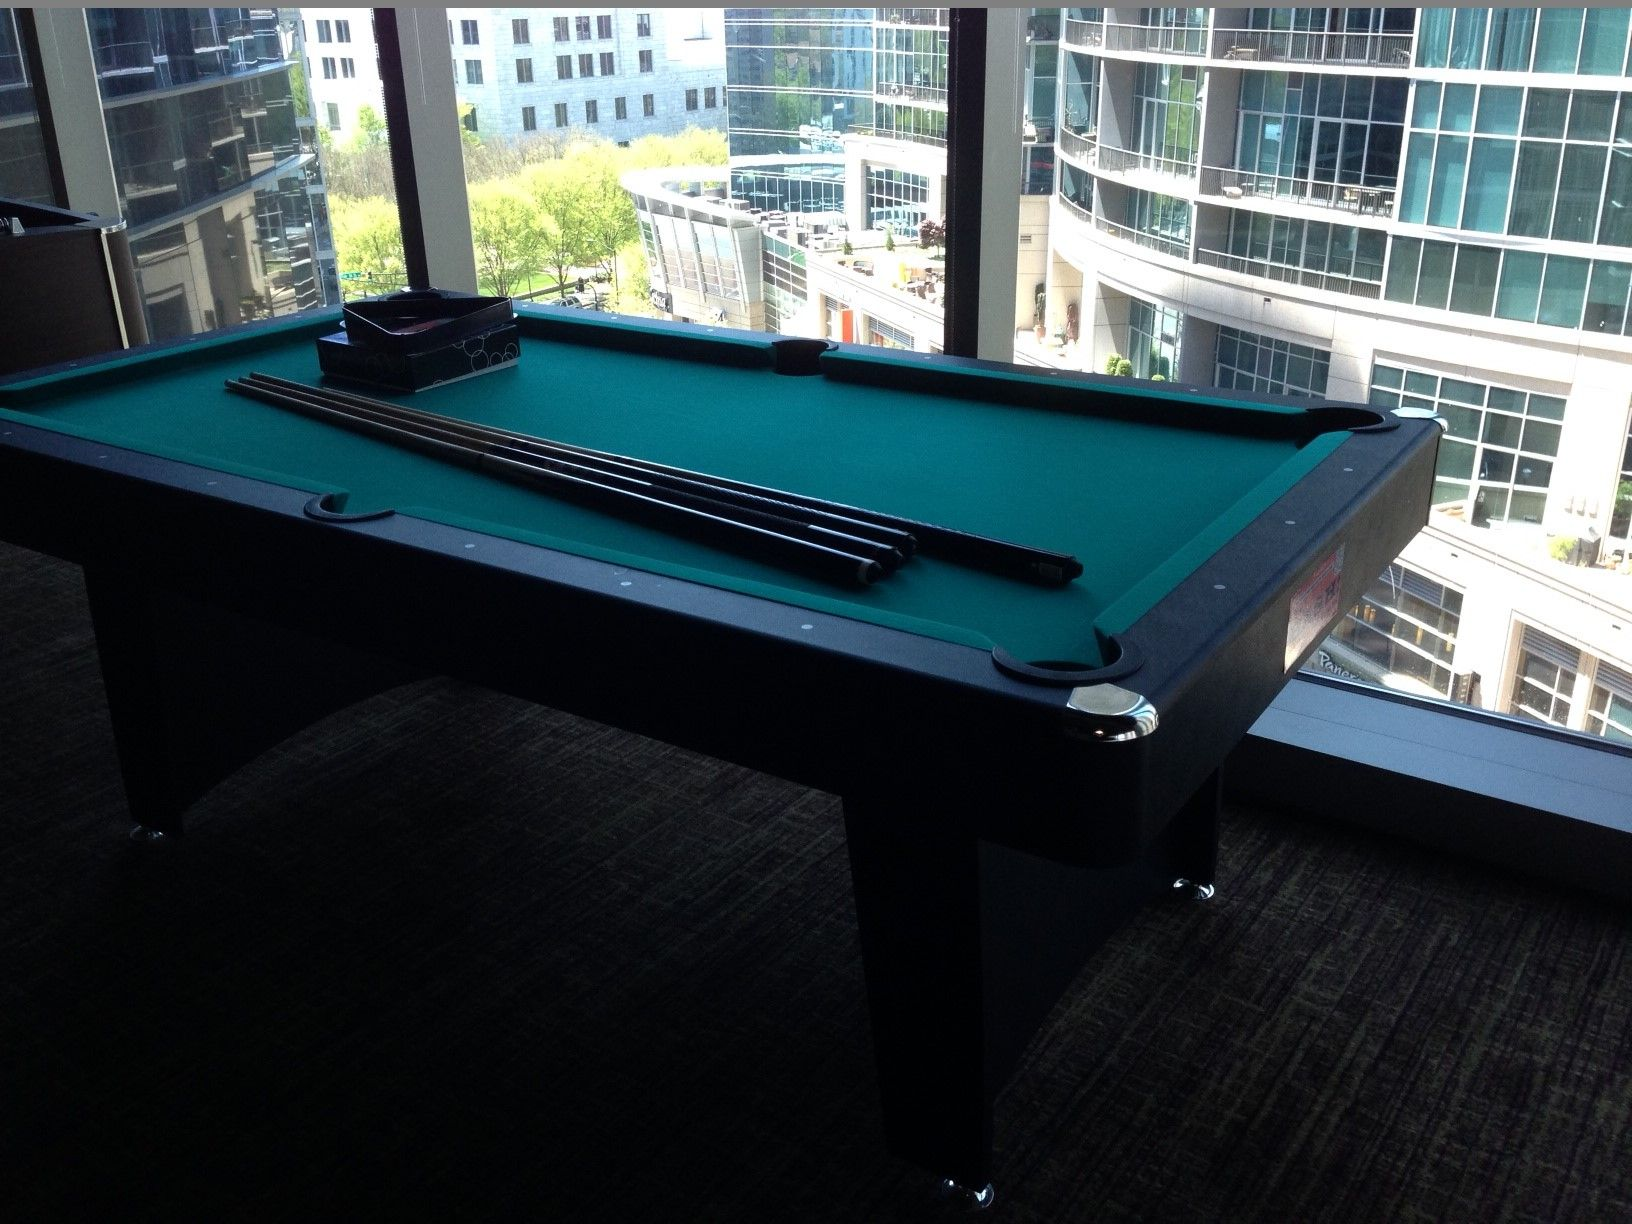 Pool Table Rental Atlanta Pool Table Rental Atlanta Games - Pool table rental atlanta